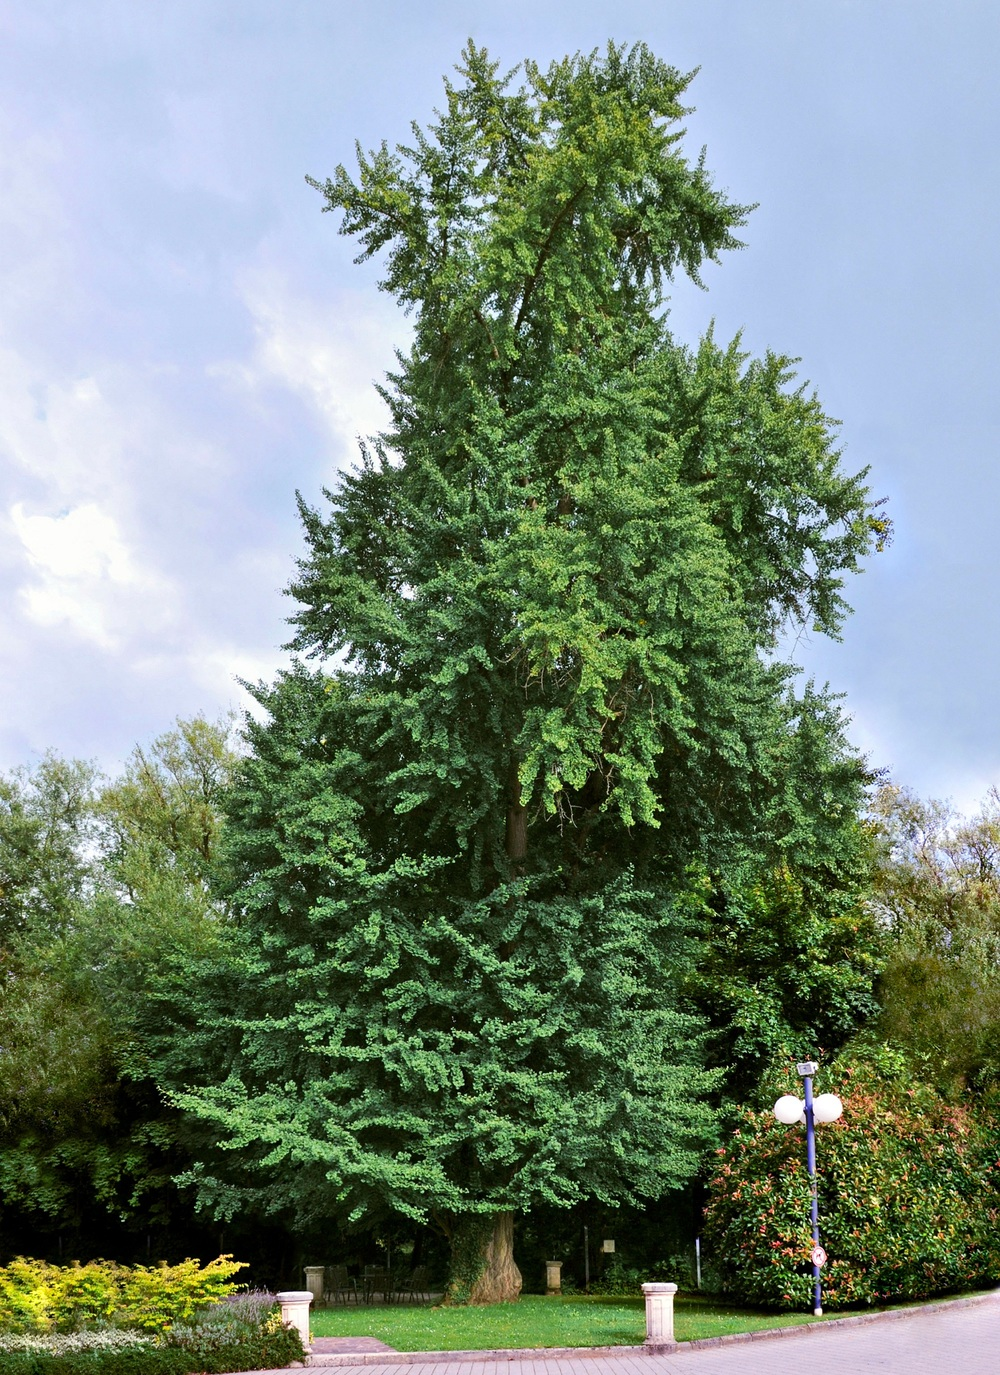 The lonely  Gingko biloba   tree. The last member of an ancient phylum. Photo credit: Claude Meisch, Wikimedia Commons.